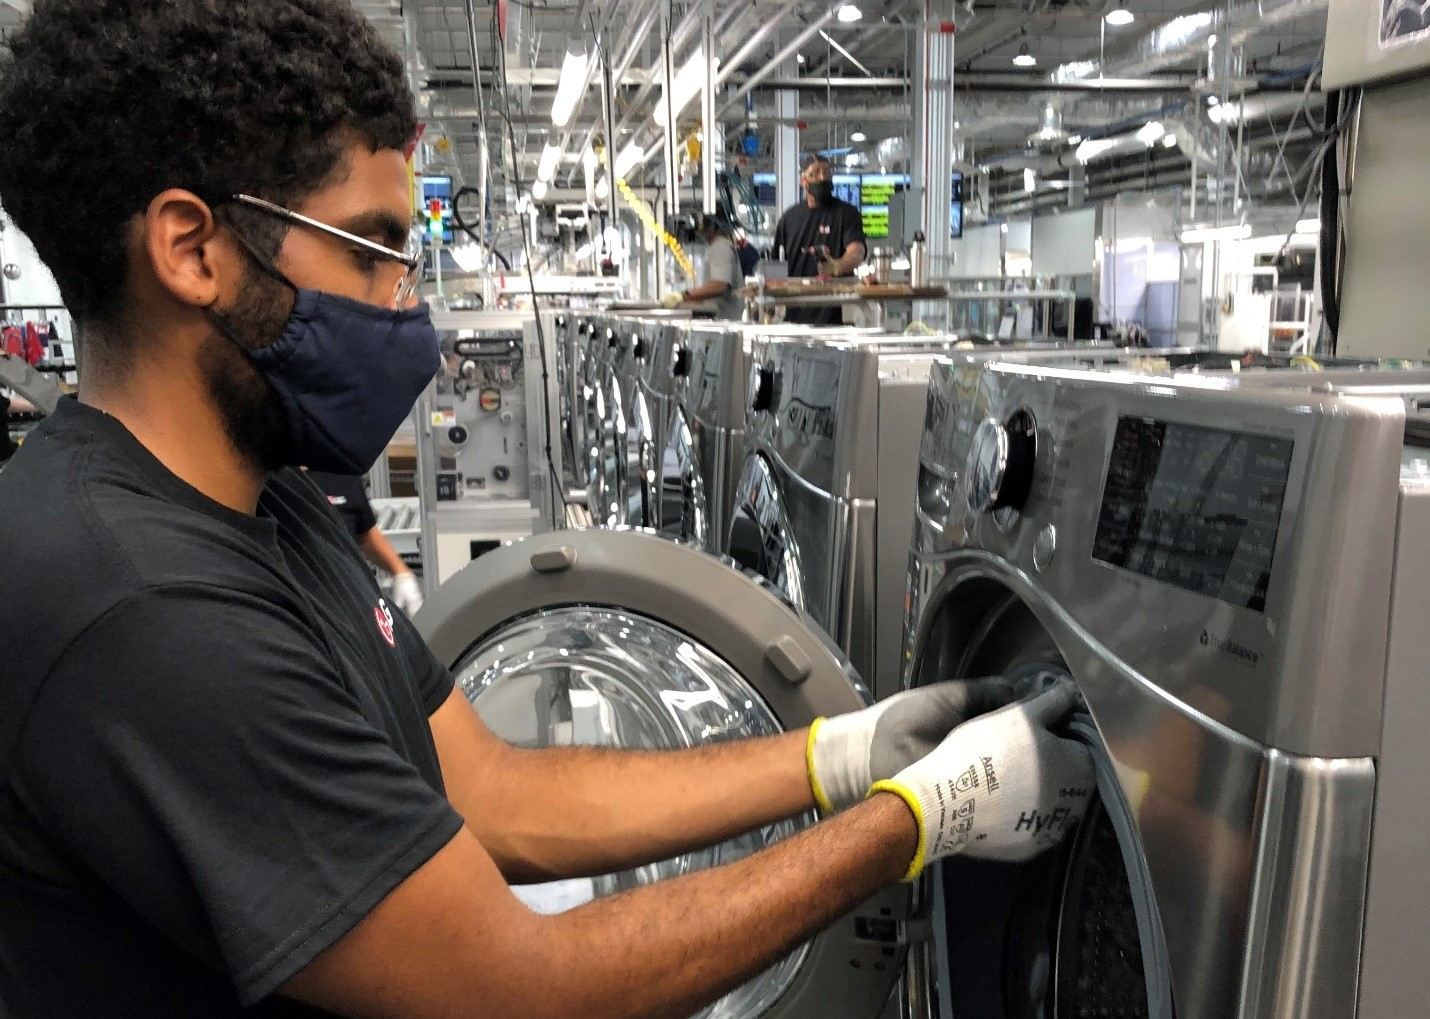 A closer look at one US factory worker fitting a part to the LG washer's door